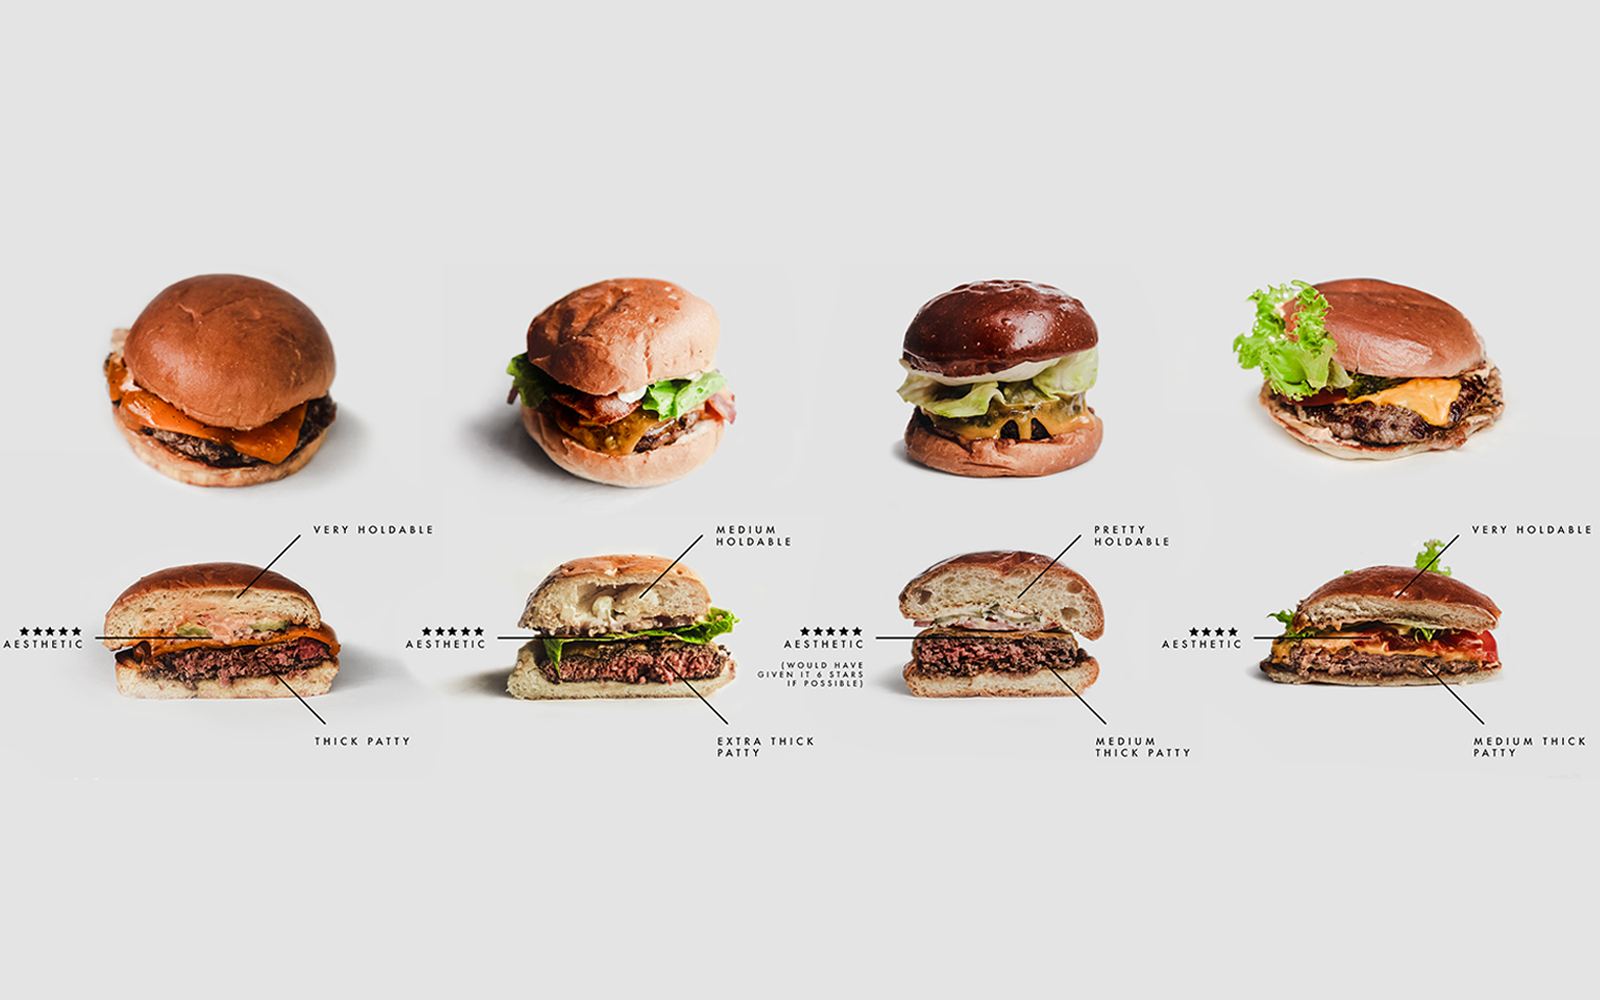 The Ultimate Guide To The Best Burgers Of Copenhagen